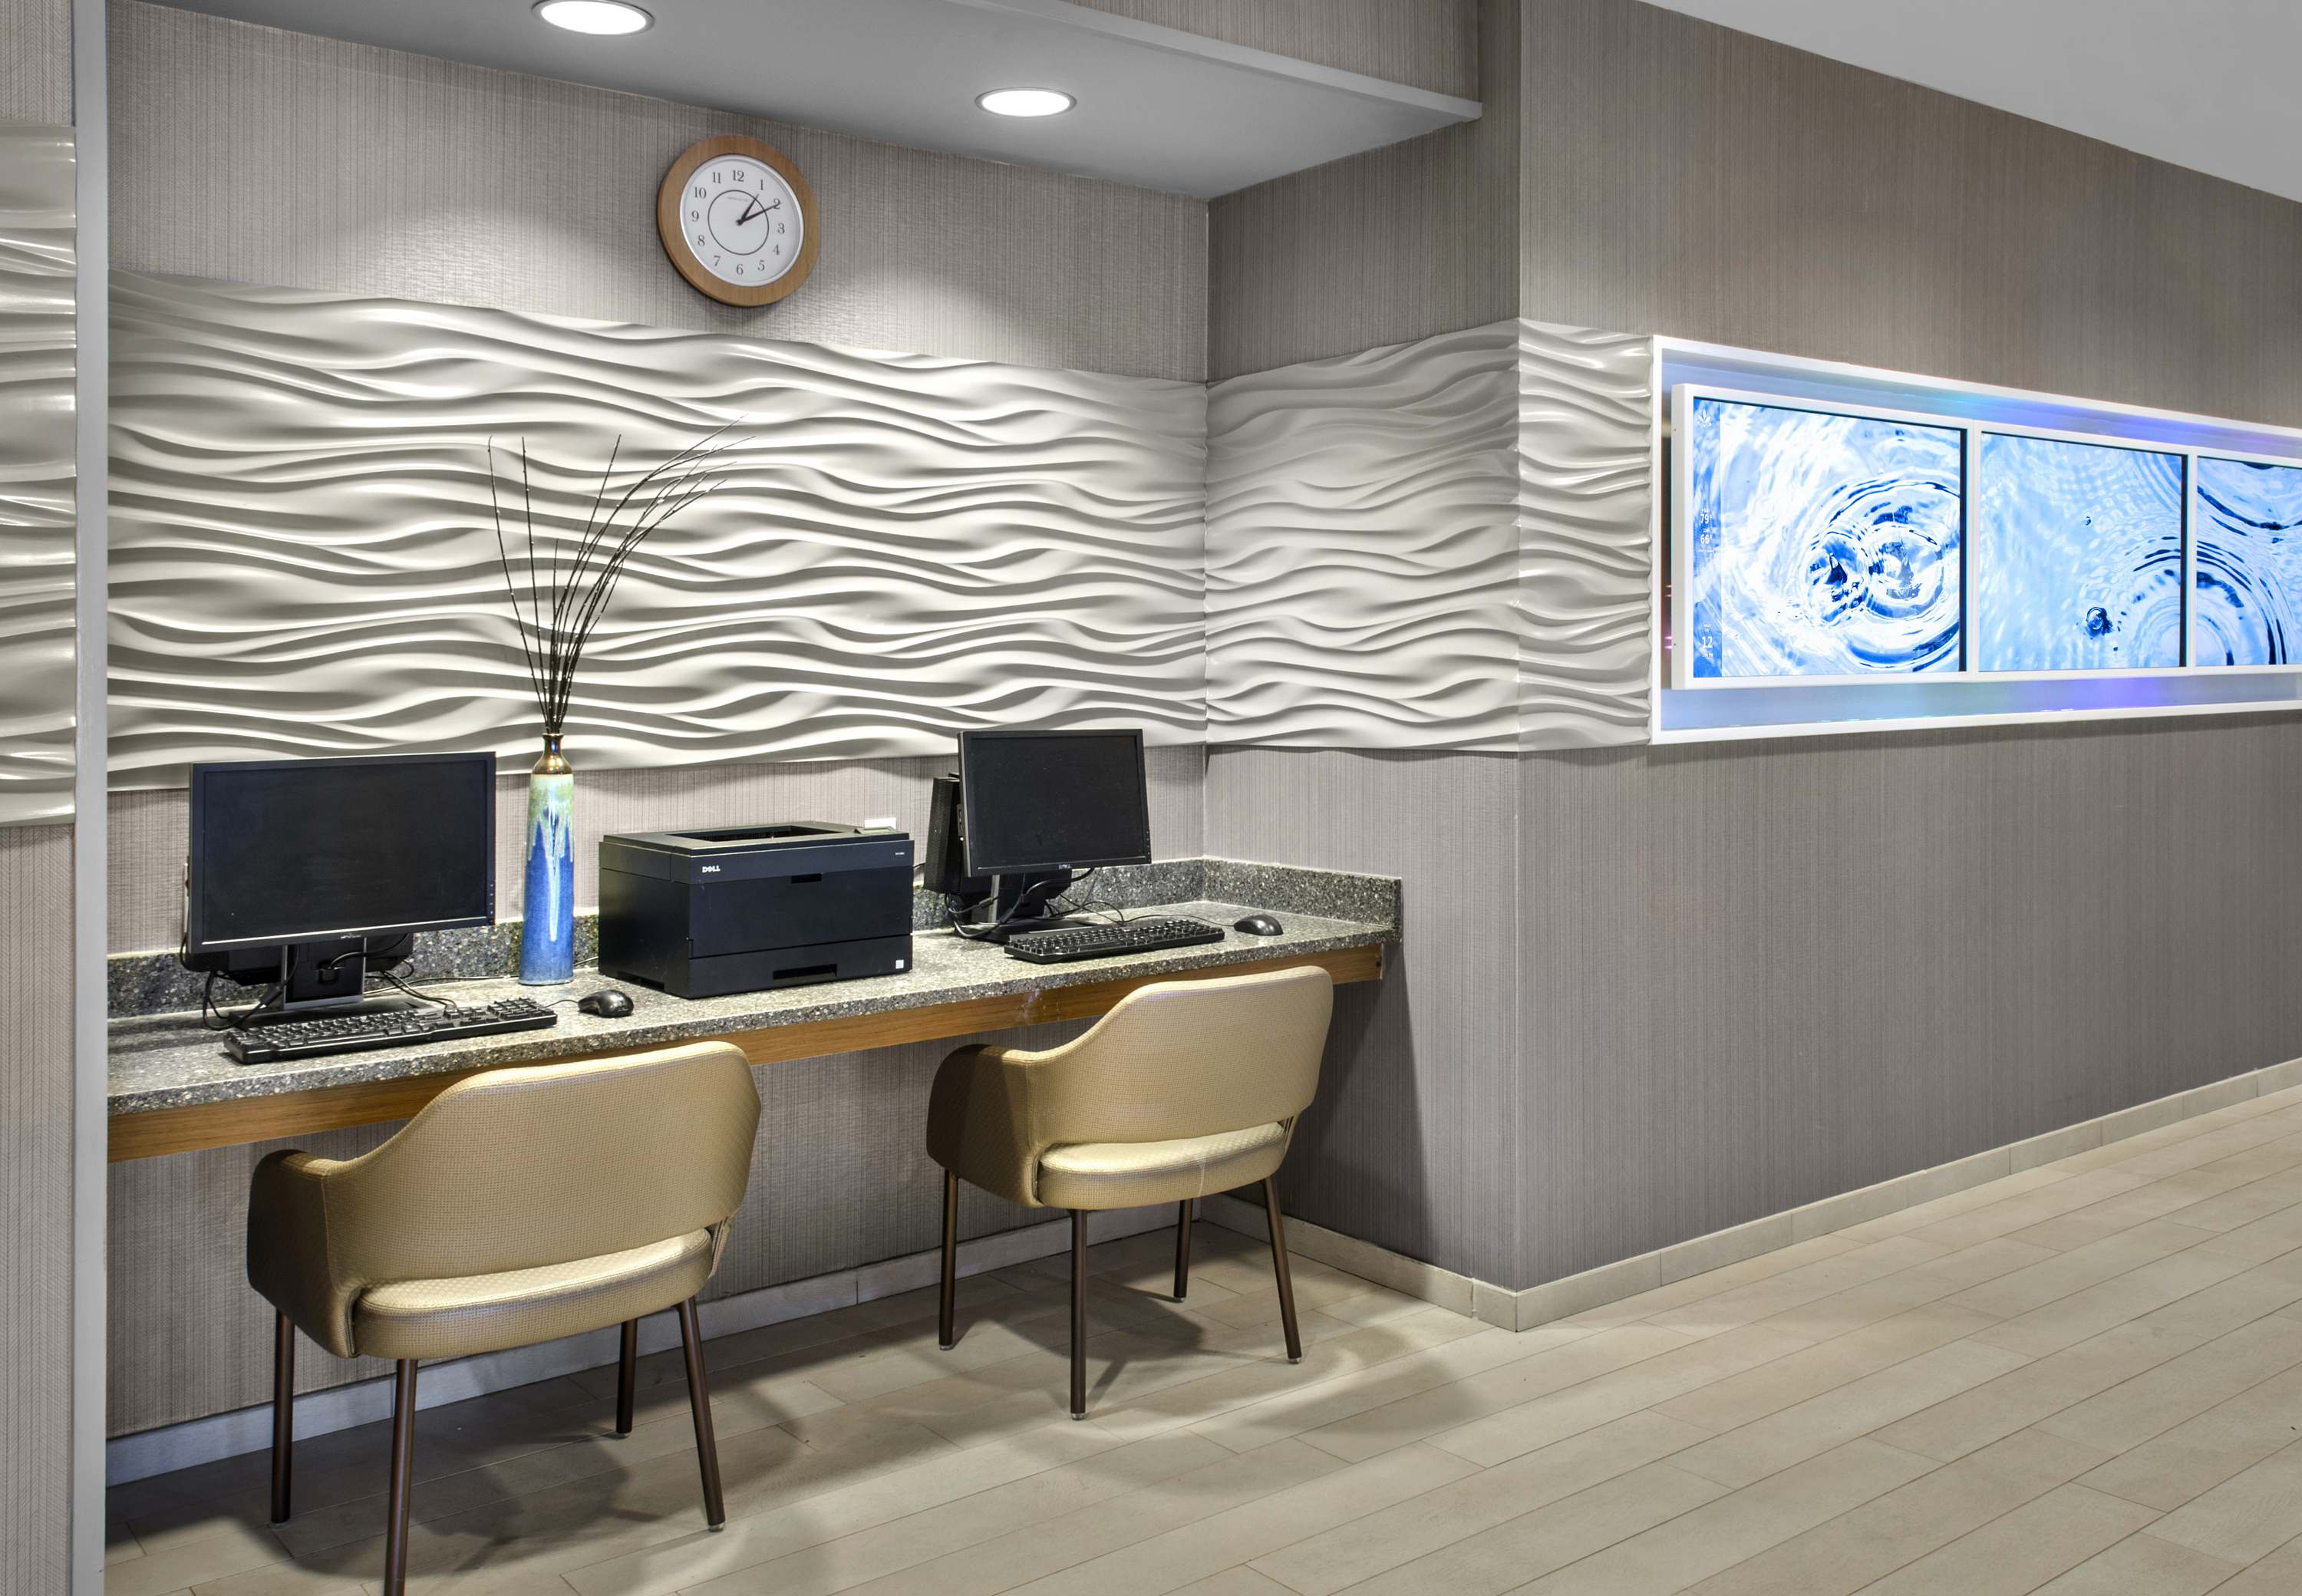 SpringHill Suites by Marriott Long Island Brookhaven image 7